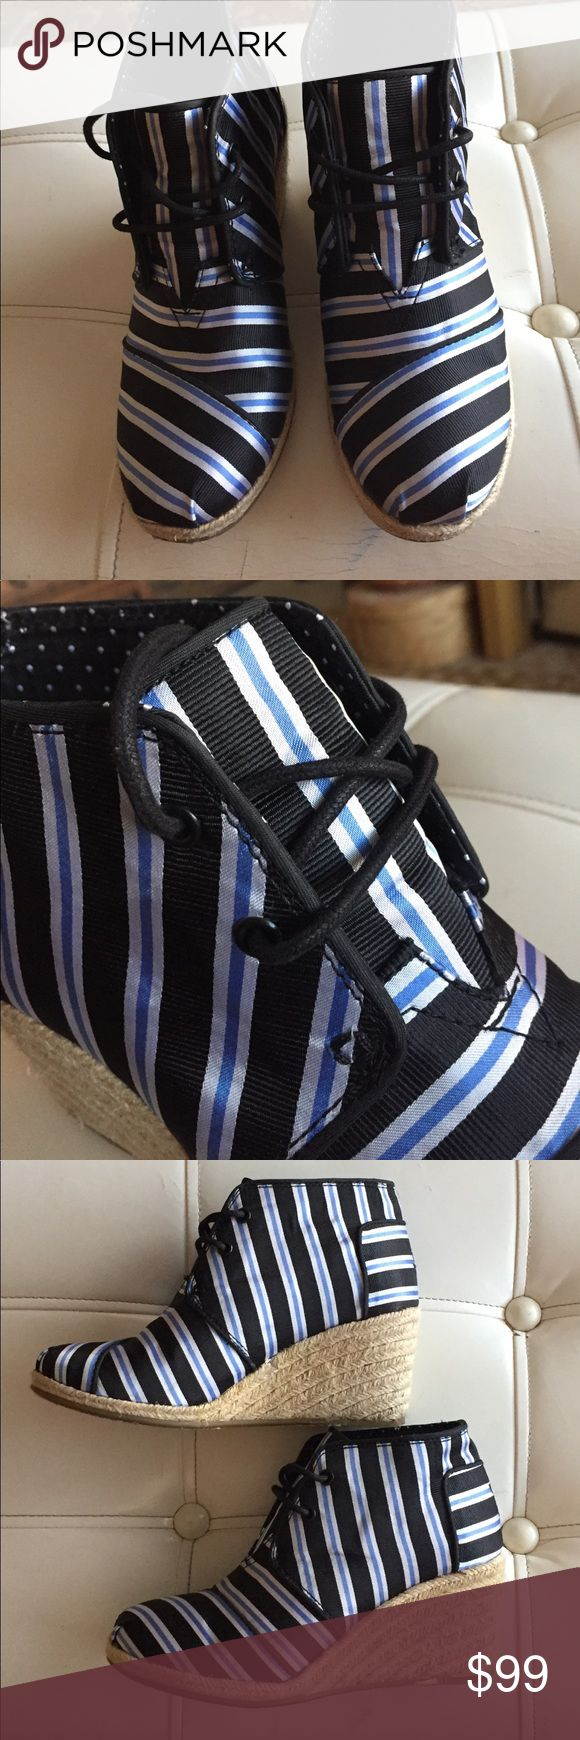 """Toms x Tabitha Simmons wedge bootie Toms x Tabitha Simmons wedge bootie in crisp navy stripe gros grain fabric with jute sole detail. 2 1/2"""" heel TOMS Shoes Espadrilles"""